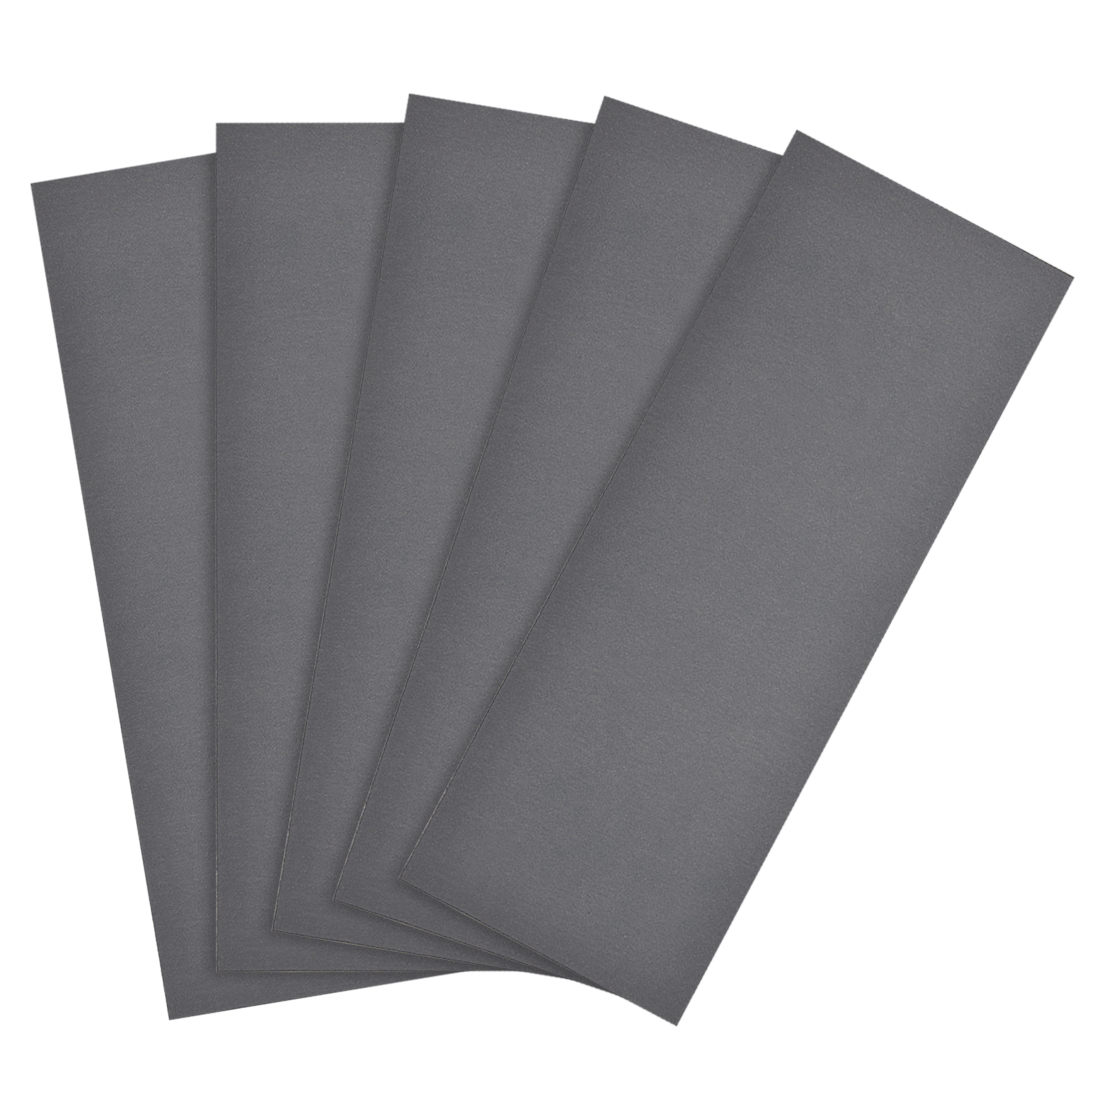 Waterproof Sandpaper, Wet Dry Sand Paper Grit of 1200, 9 x 3.7inch 5pcs